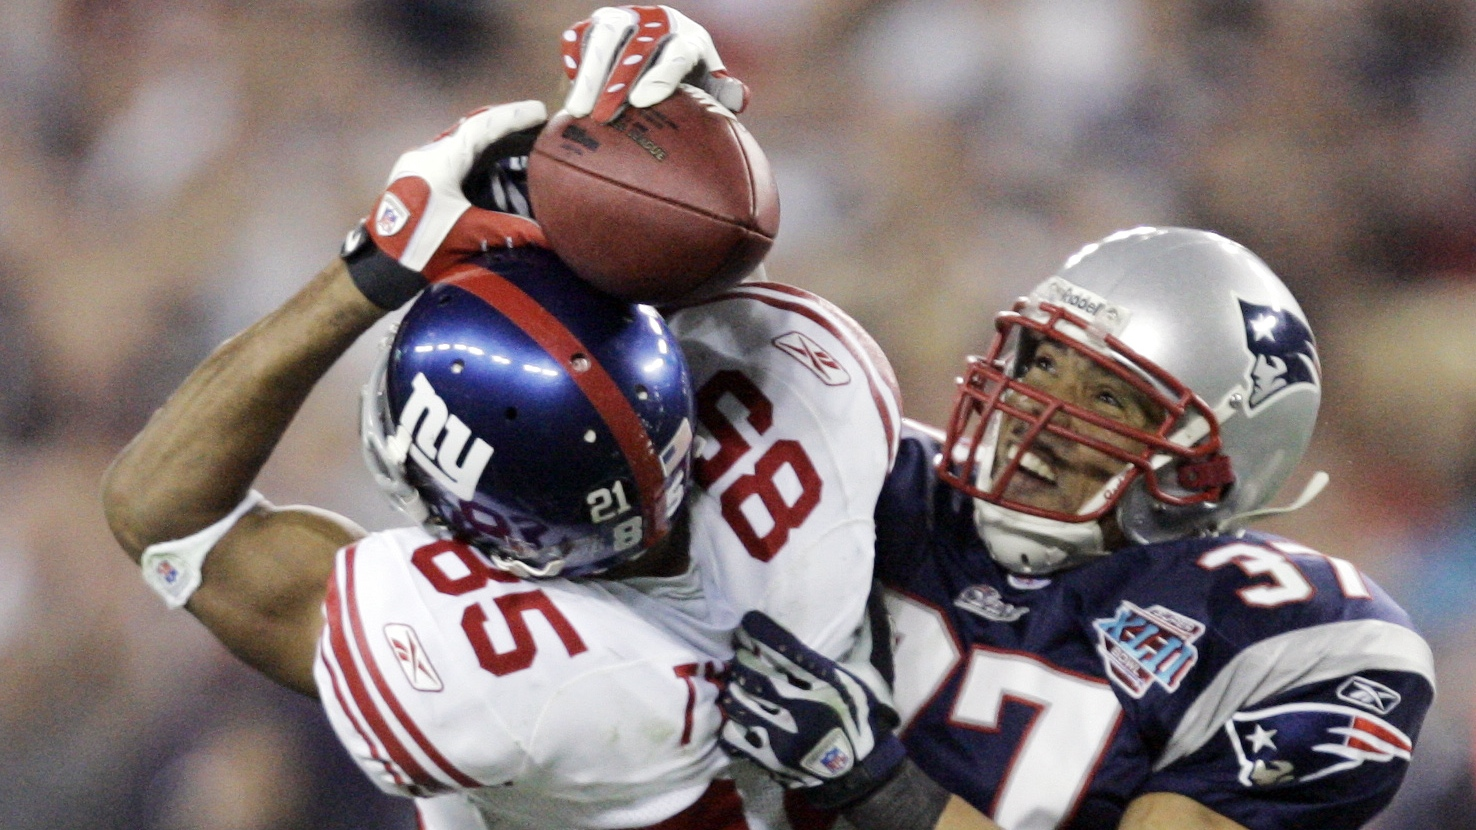 David Tyree 2008 Super Bowl Catch - H 2015